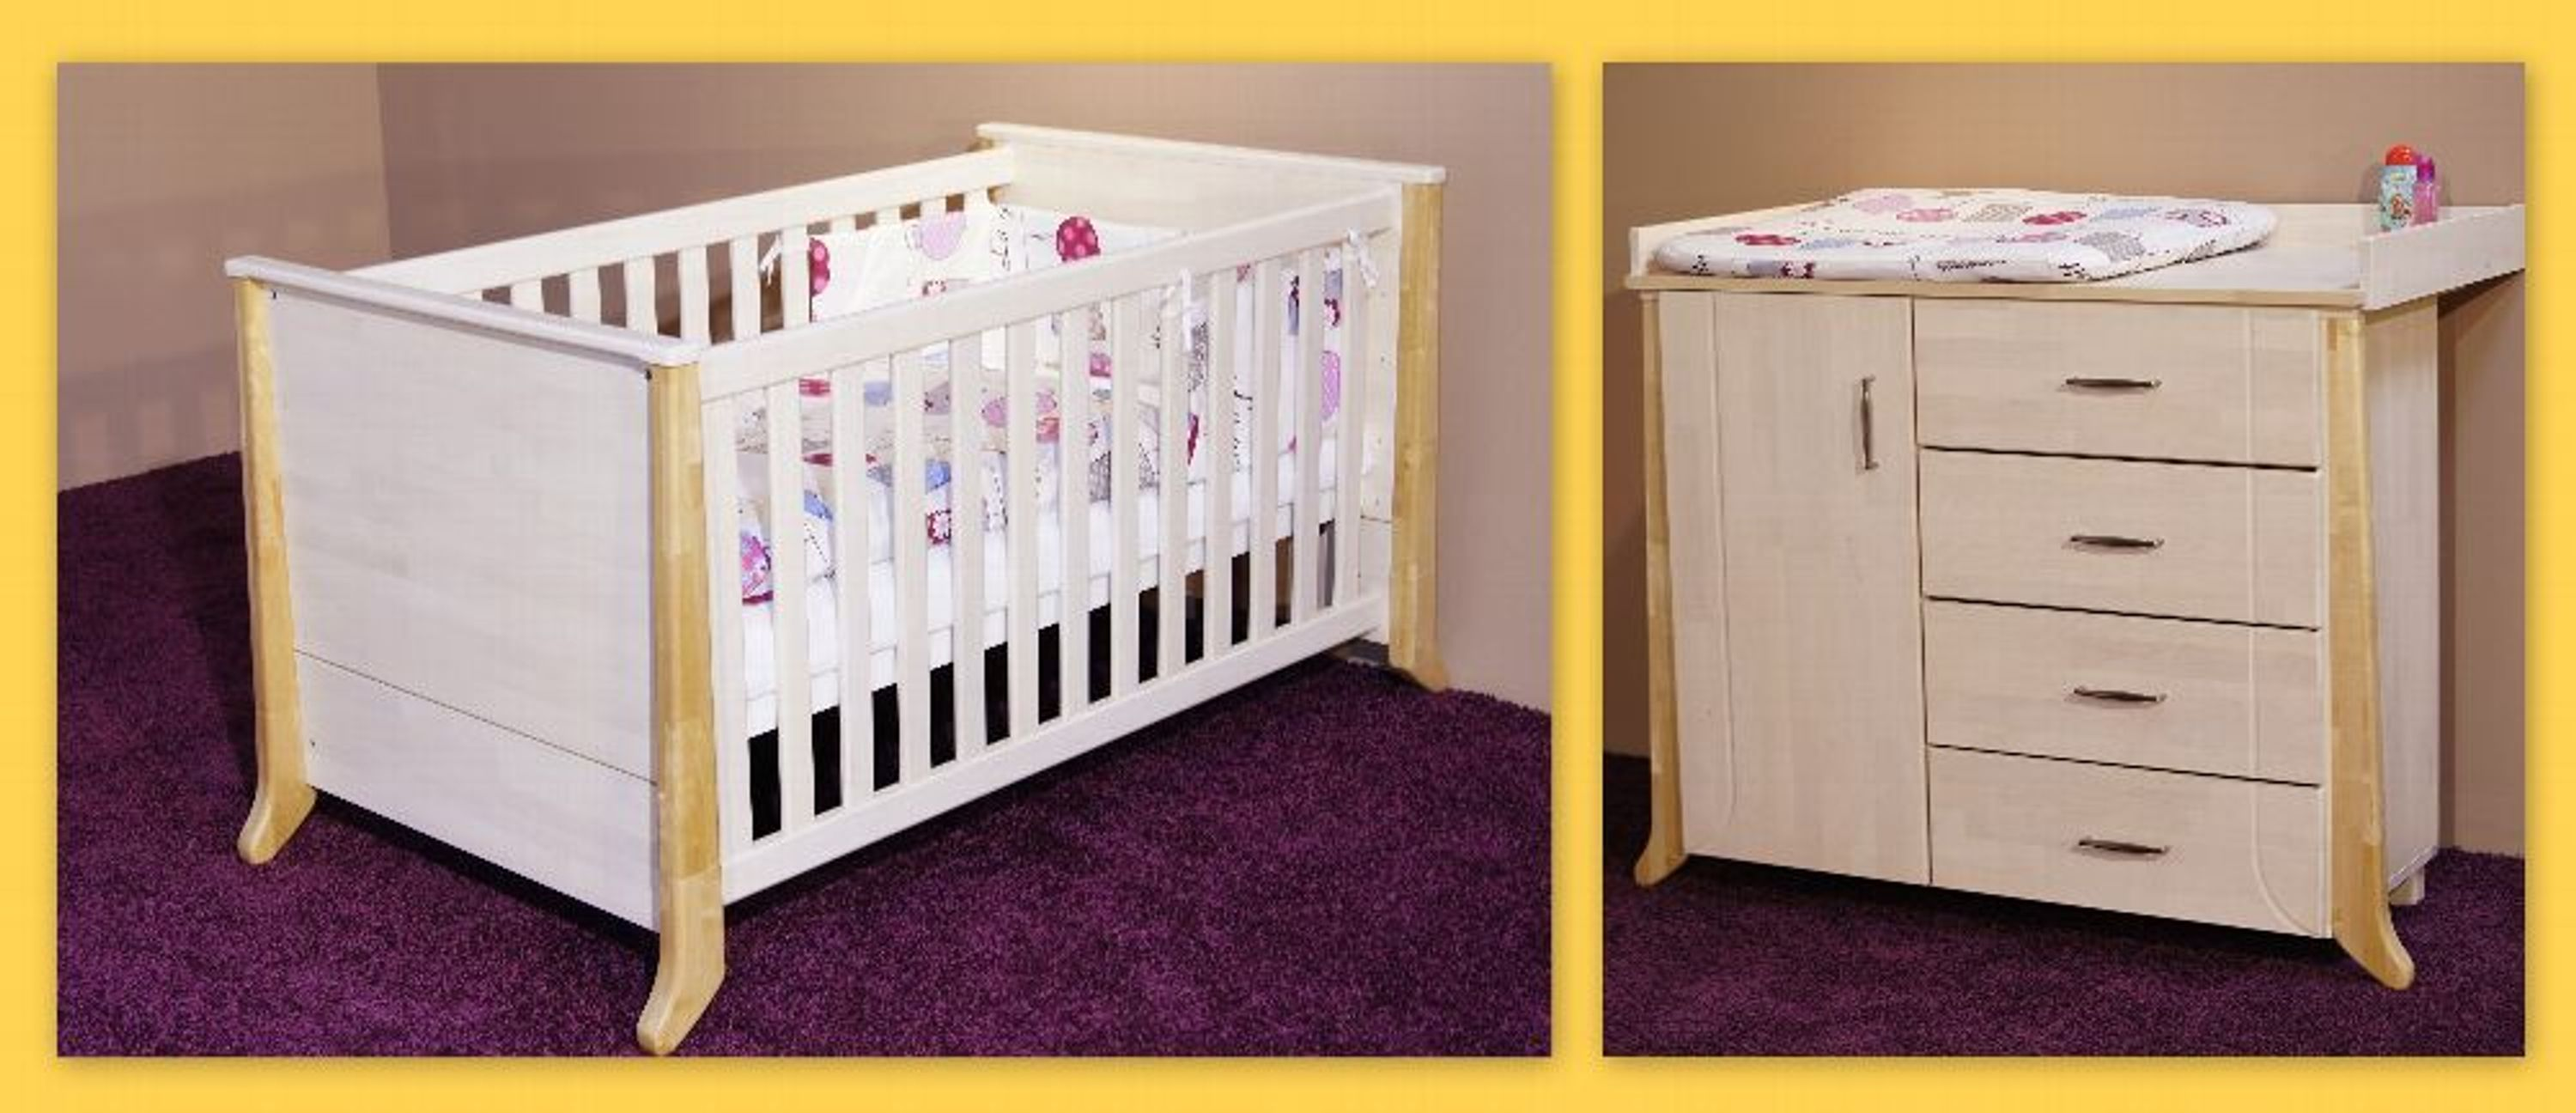 taube kinderzimmer babyzimmer willi bett u. Black Bedroom Furniture Sets. Home Design Ideas